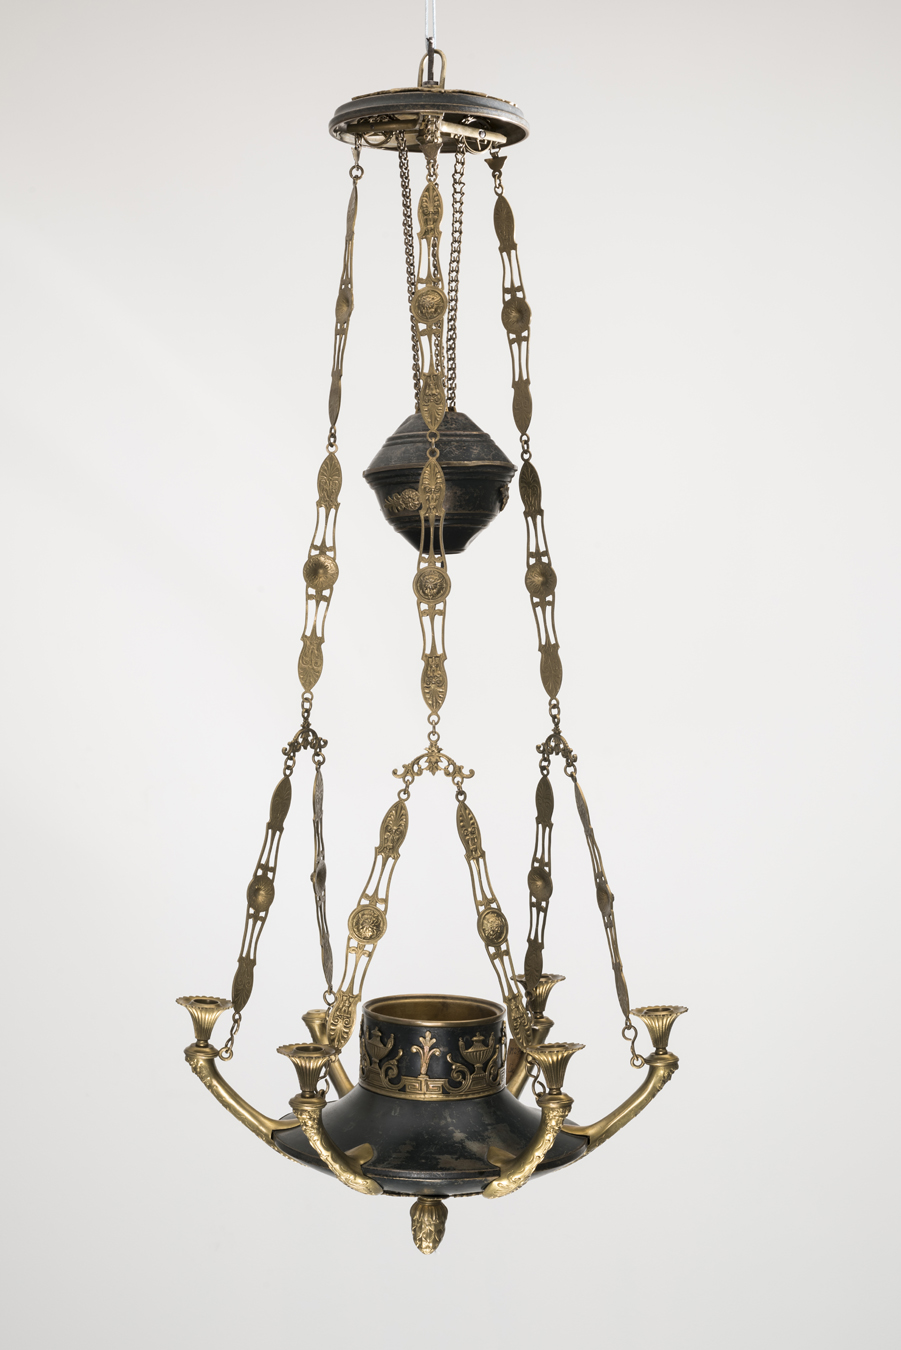 Chandelier, the 2nd half of the 19th c., the National Museum of Lithuania, IM-2991. Photo by Kęstutis Stoškus, 2019